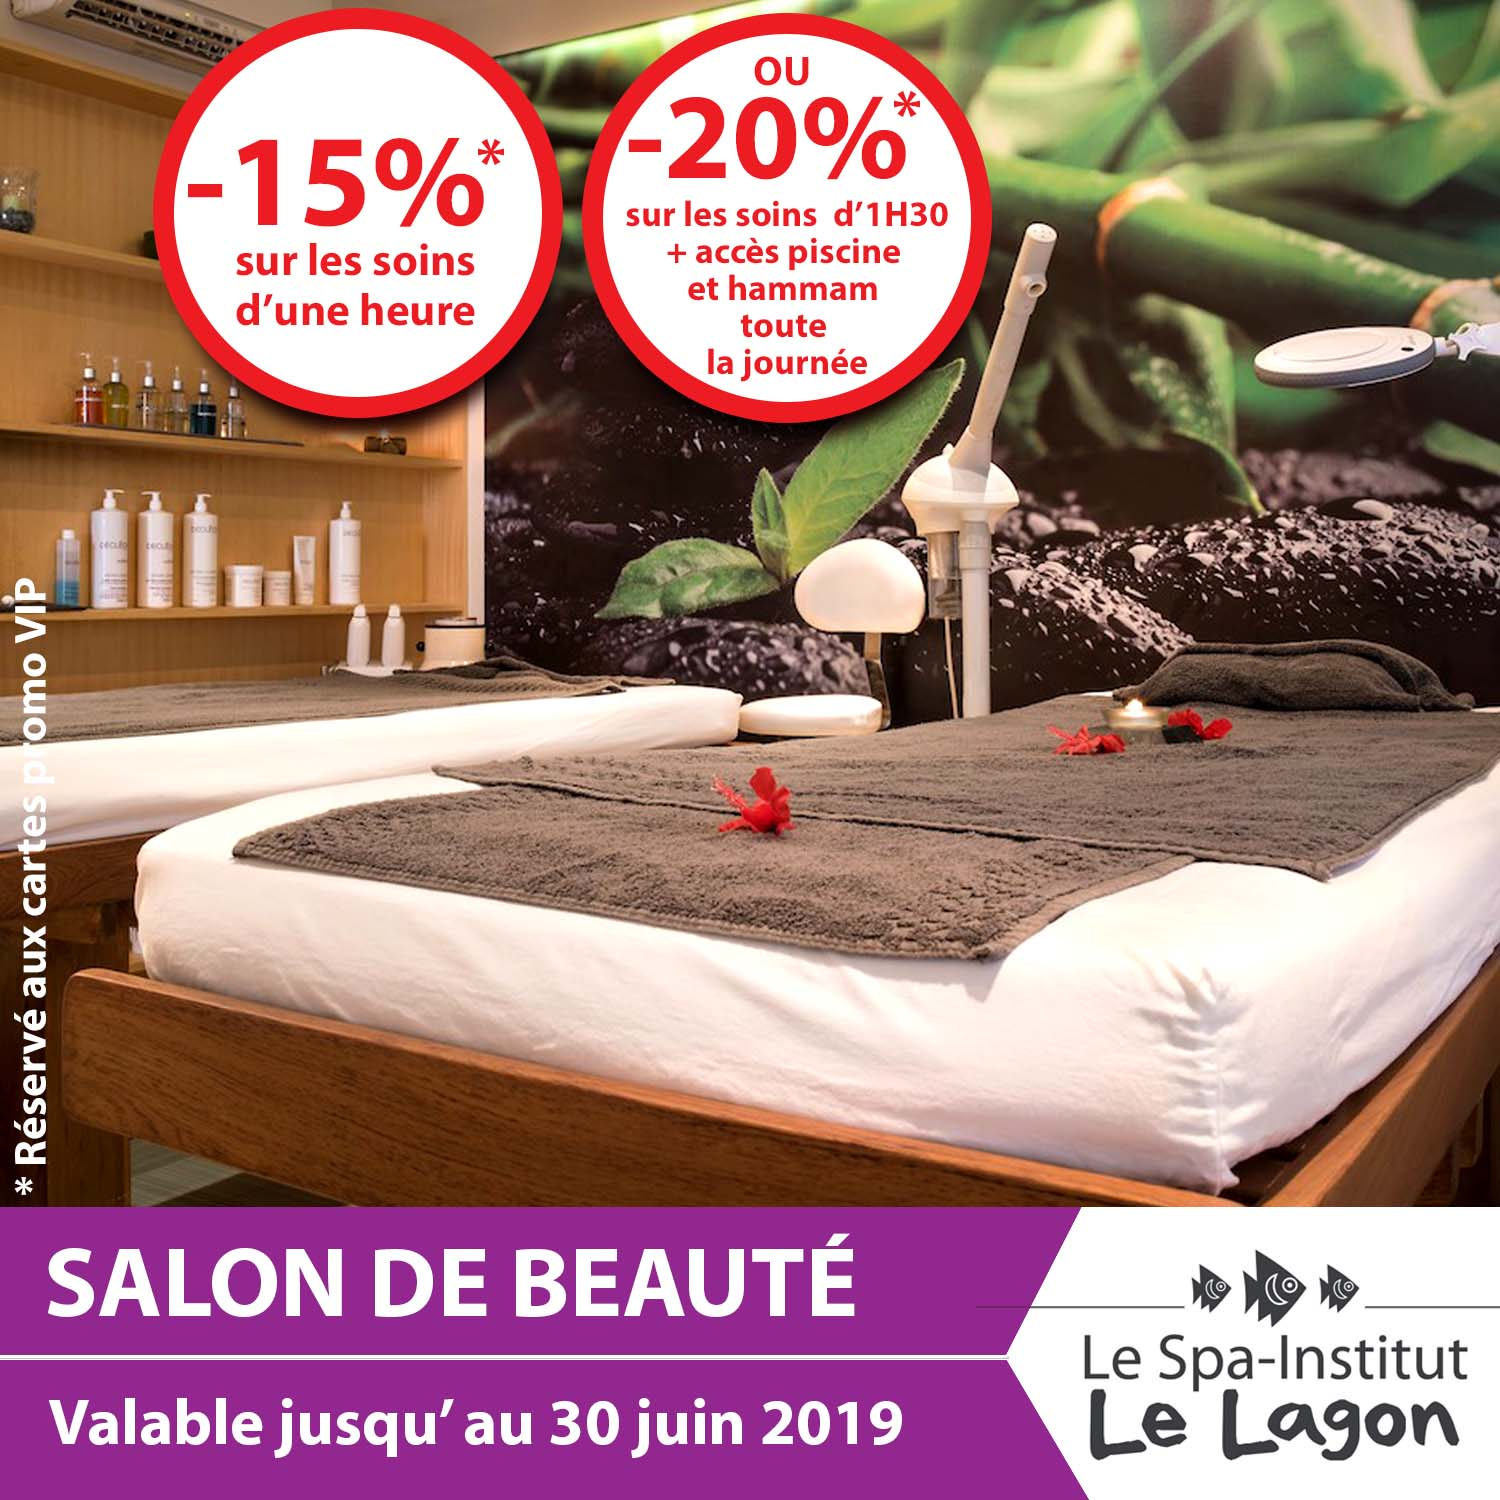 CARTES PROMOS VIP SPA INSTITUT LE LAGON 2 visuel site TOP PROMOS.jpg